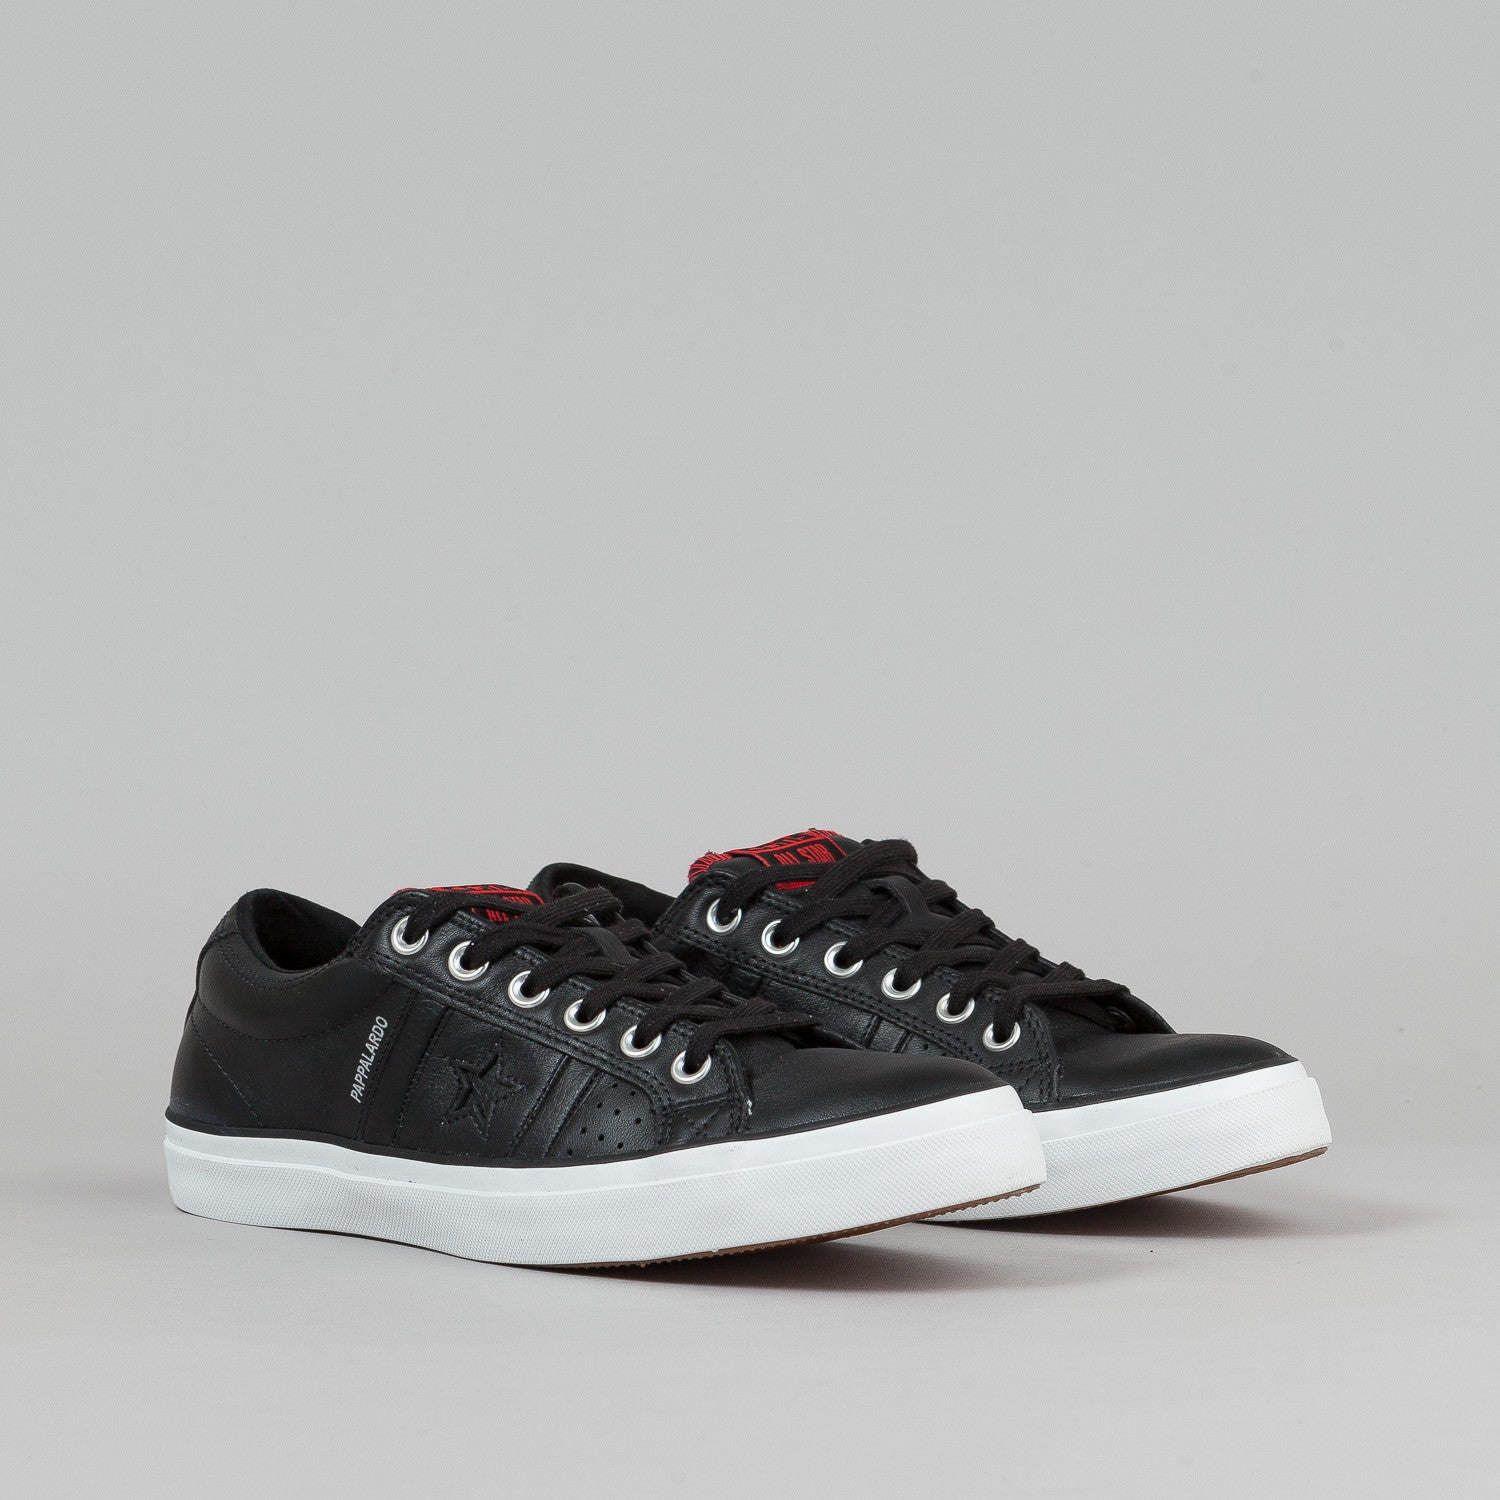 Converse Pappalardo OX Shoes - Black Leather